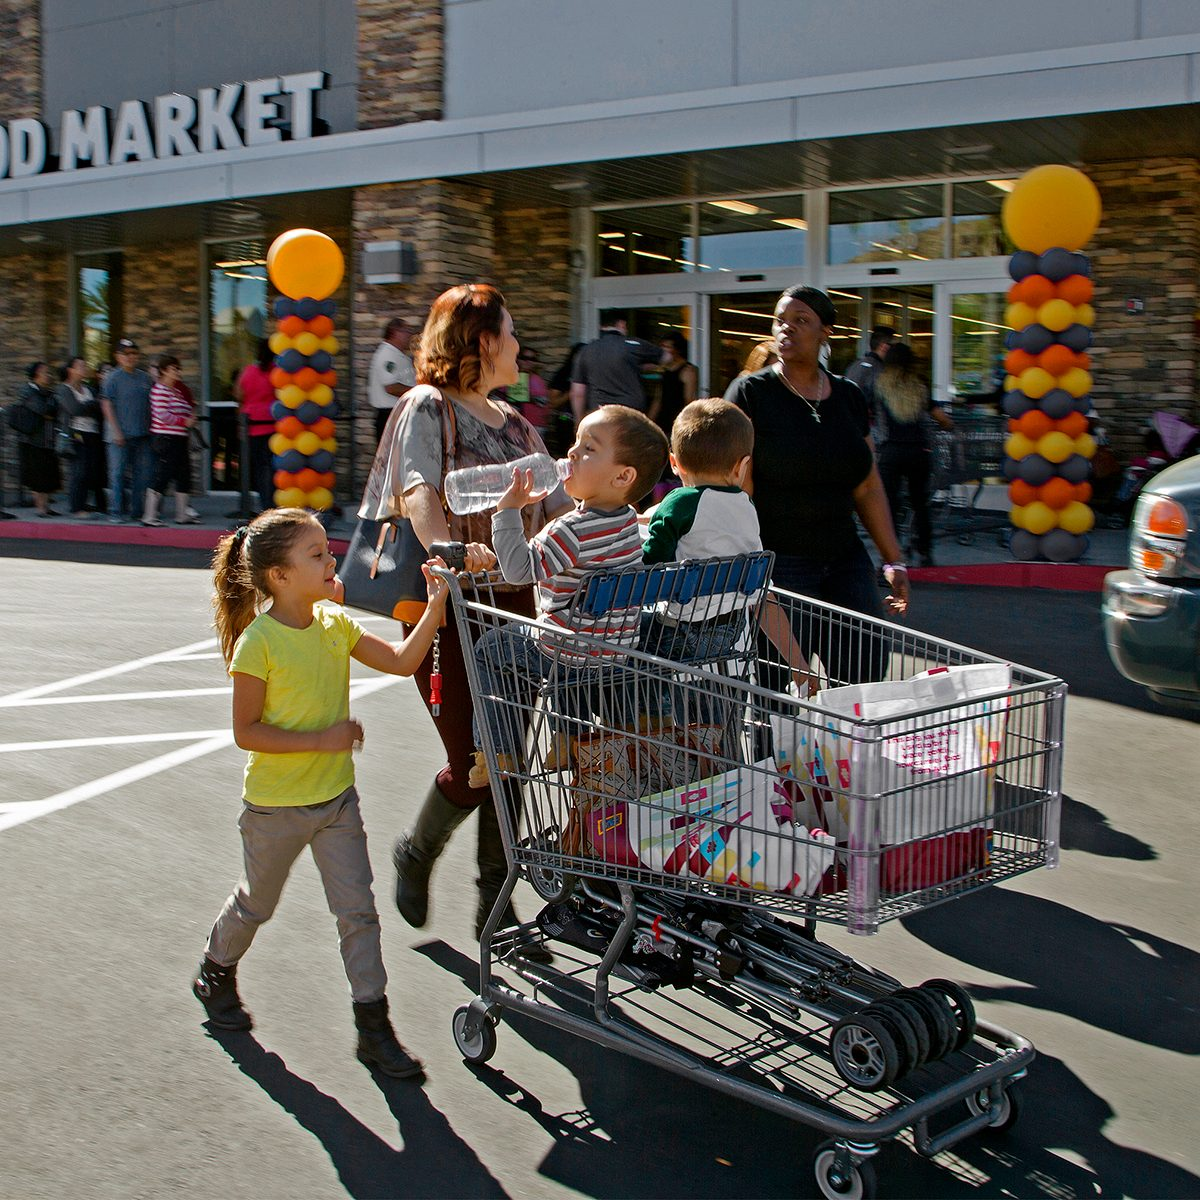 MORENO VALLEY, CA - MARCH 24: Shoppers leave with a full grocery cart as crowds wait in line to get into Aldi food market during the grand opening on March 24, 2016 in Moreno Valley, California. Aldi is opening its first 8 stores in Southern California.(Photo by Gina Ferazzi/Los Angeles Times via Getty Images)